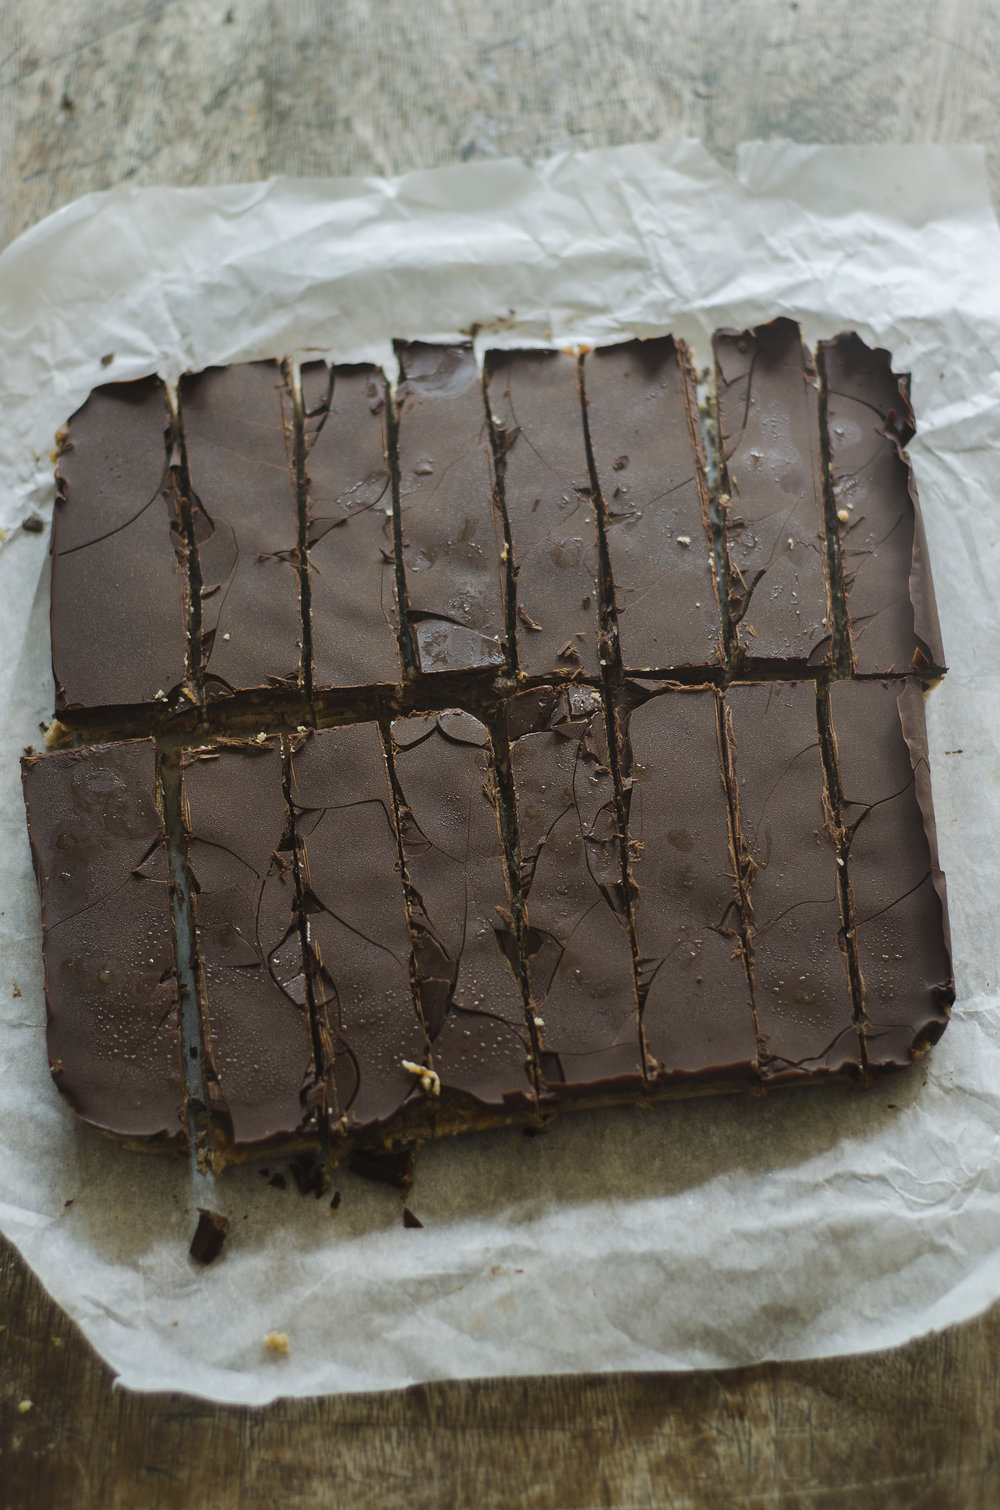 No bake vegan snickers